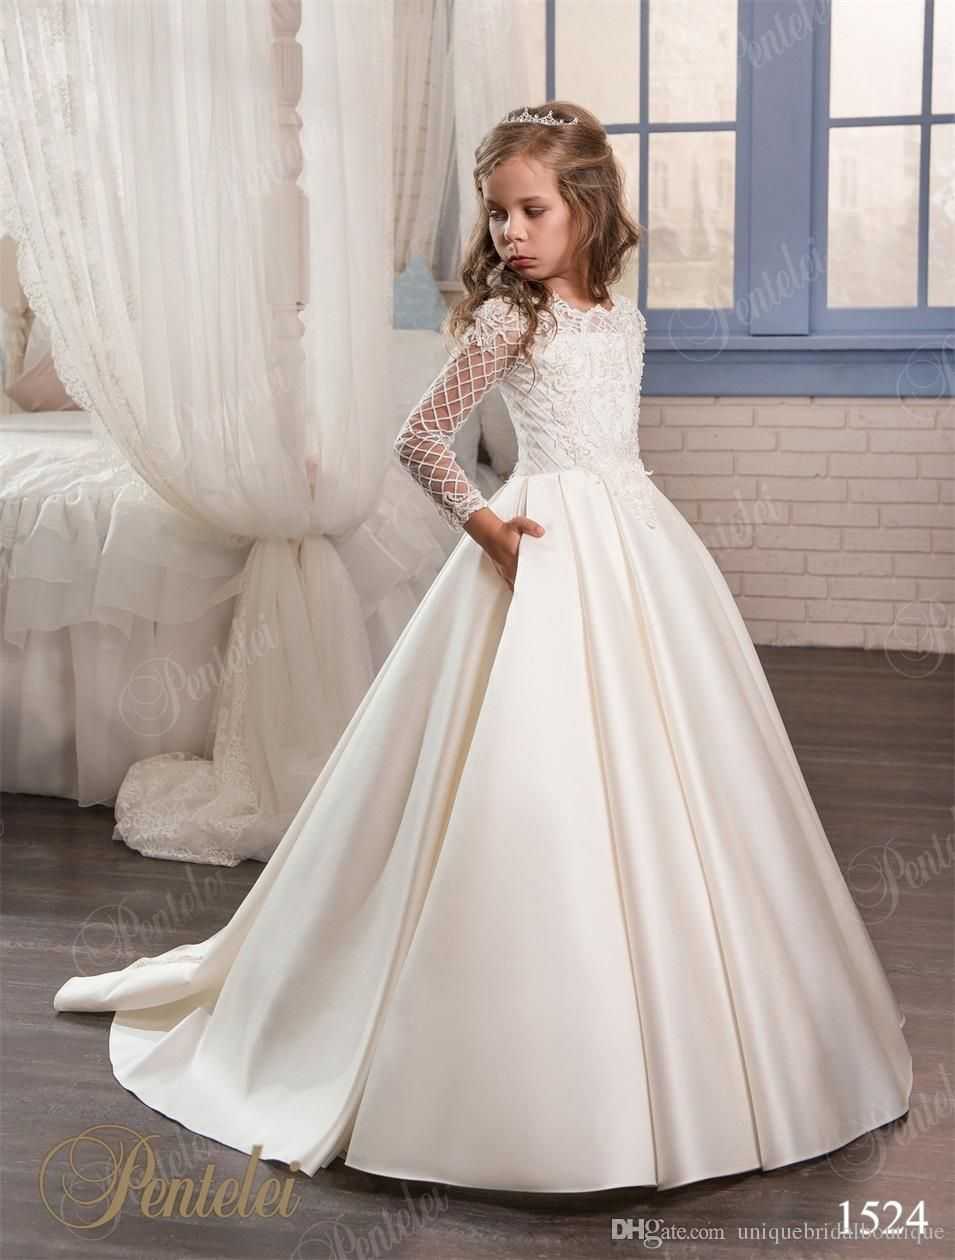 Wedding dresses for little girls 2017 pentelei cheap with for Wedding dresses for child